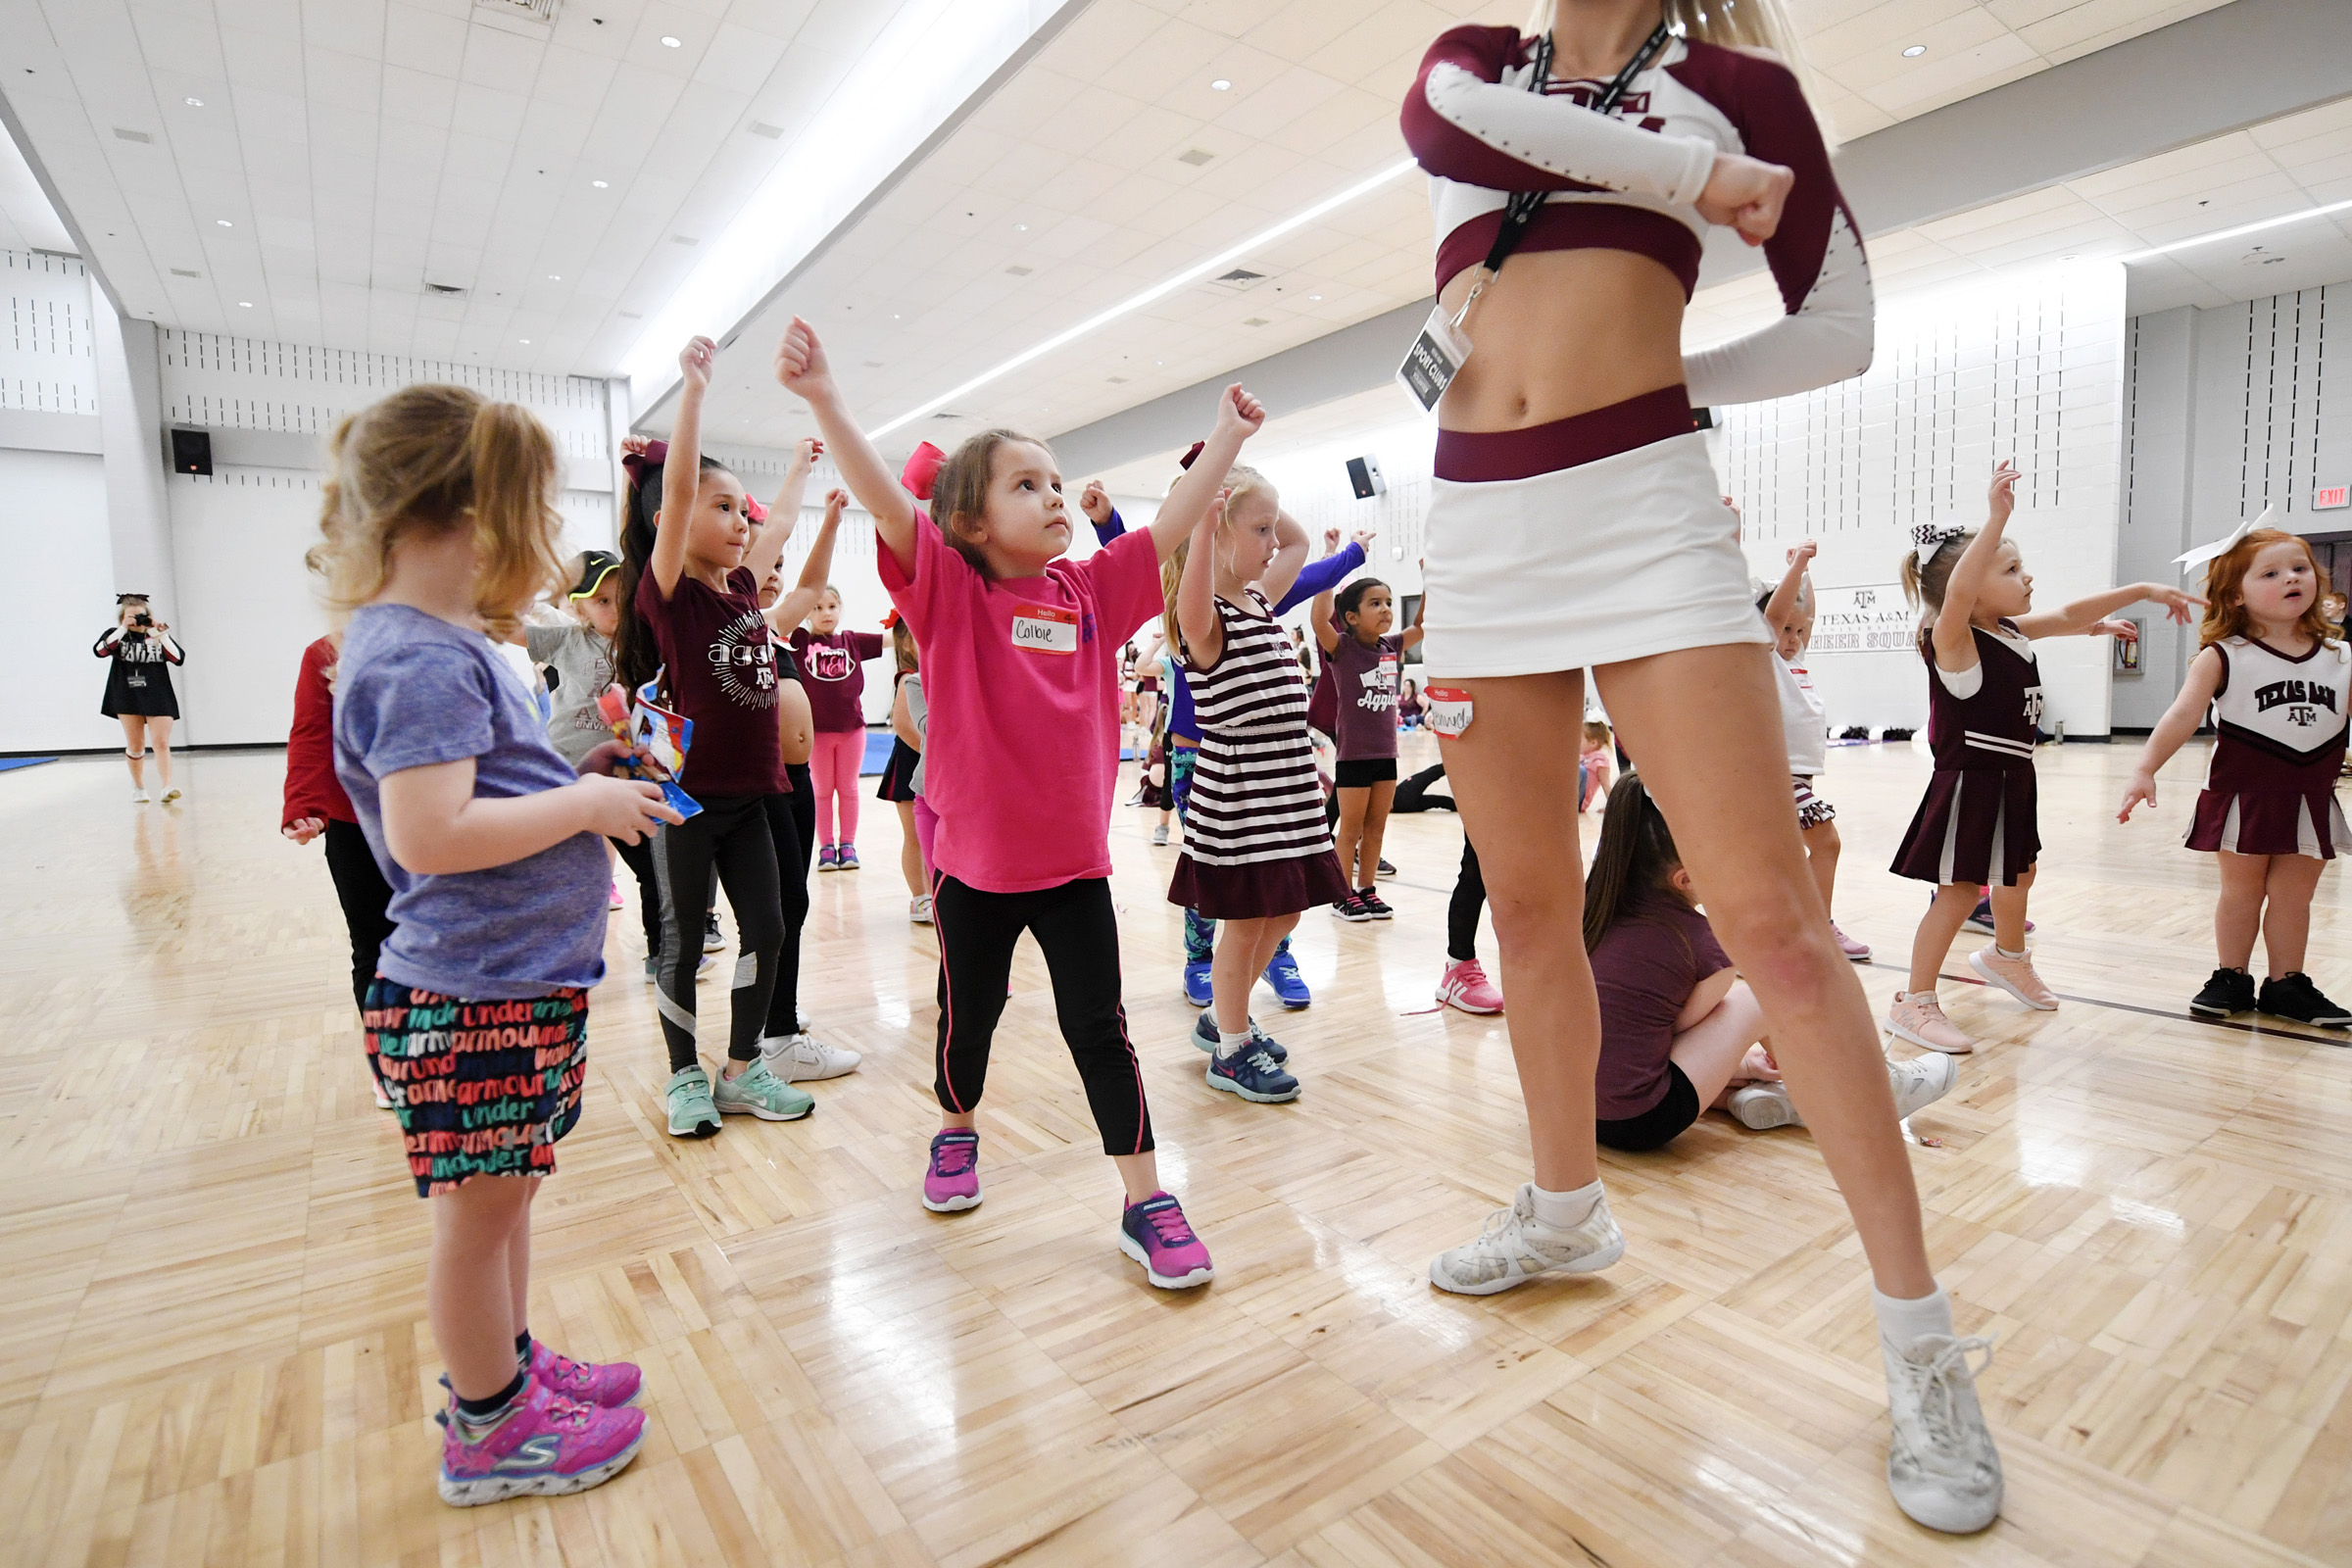 The Texas A&M Cheer Squad hosts a clinic for children ages 3-14 at the Student Recreation Center on Saturday, Jan. 19, 2019, in College Station, Texas. Participants played games, learned cheers and practiced jumps and tumbling skills. (Laura McKenzie/The Eagle)